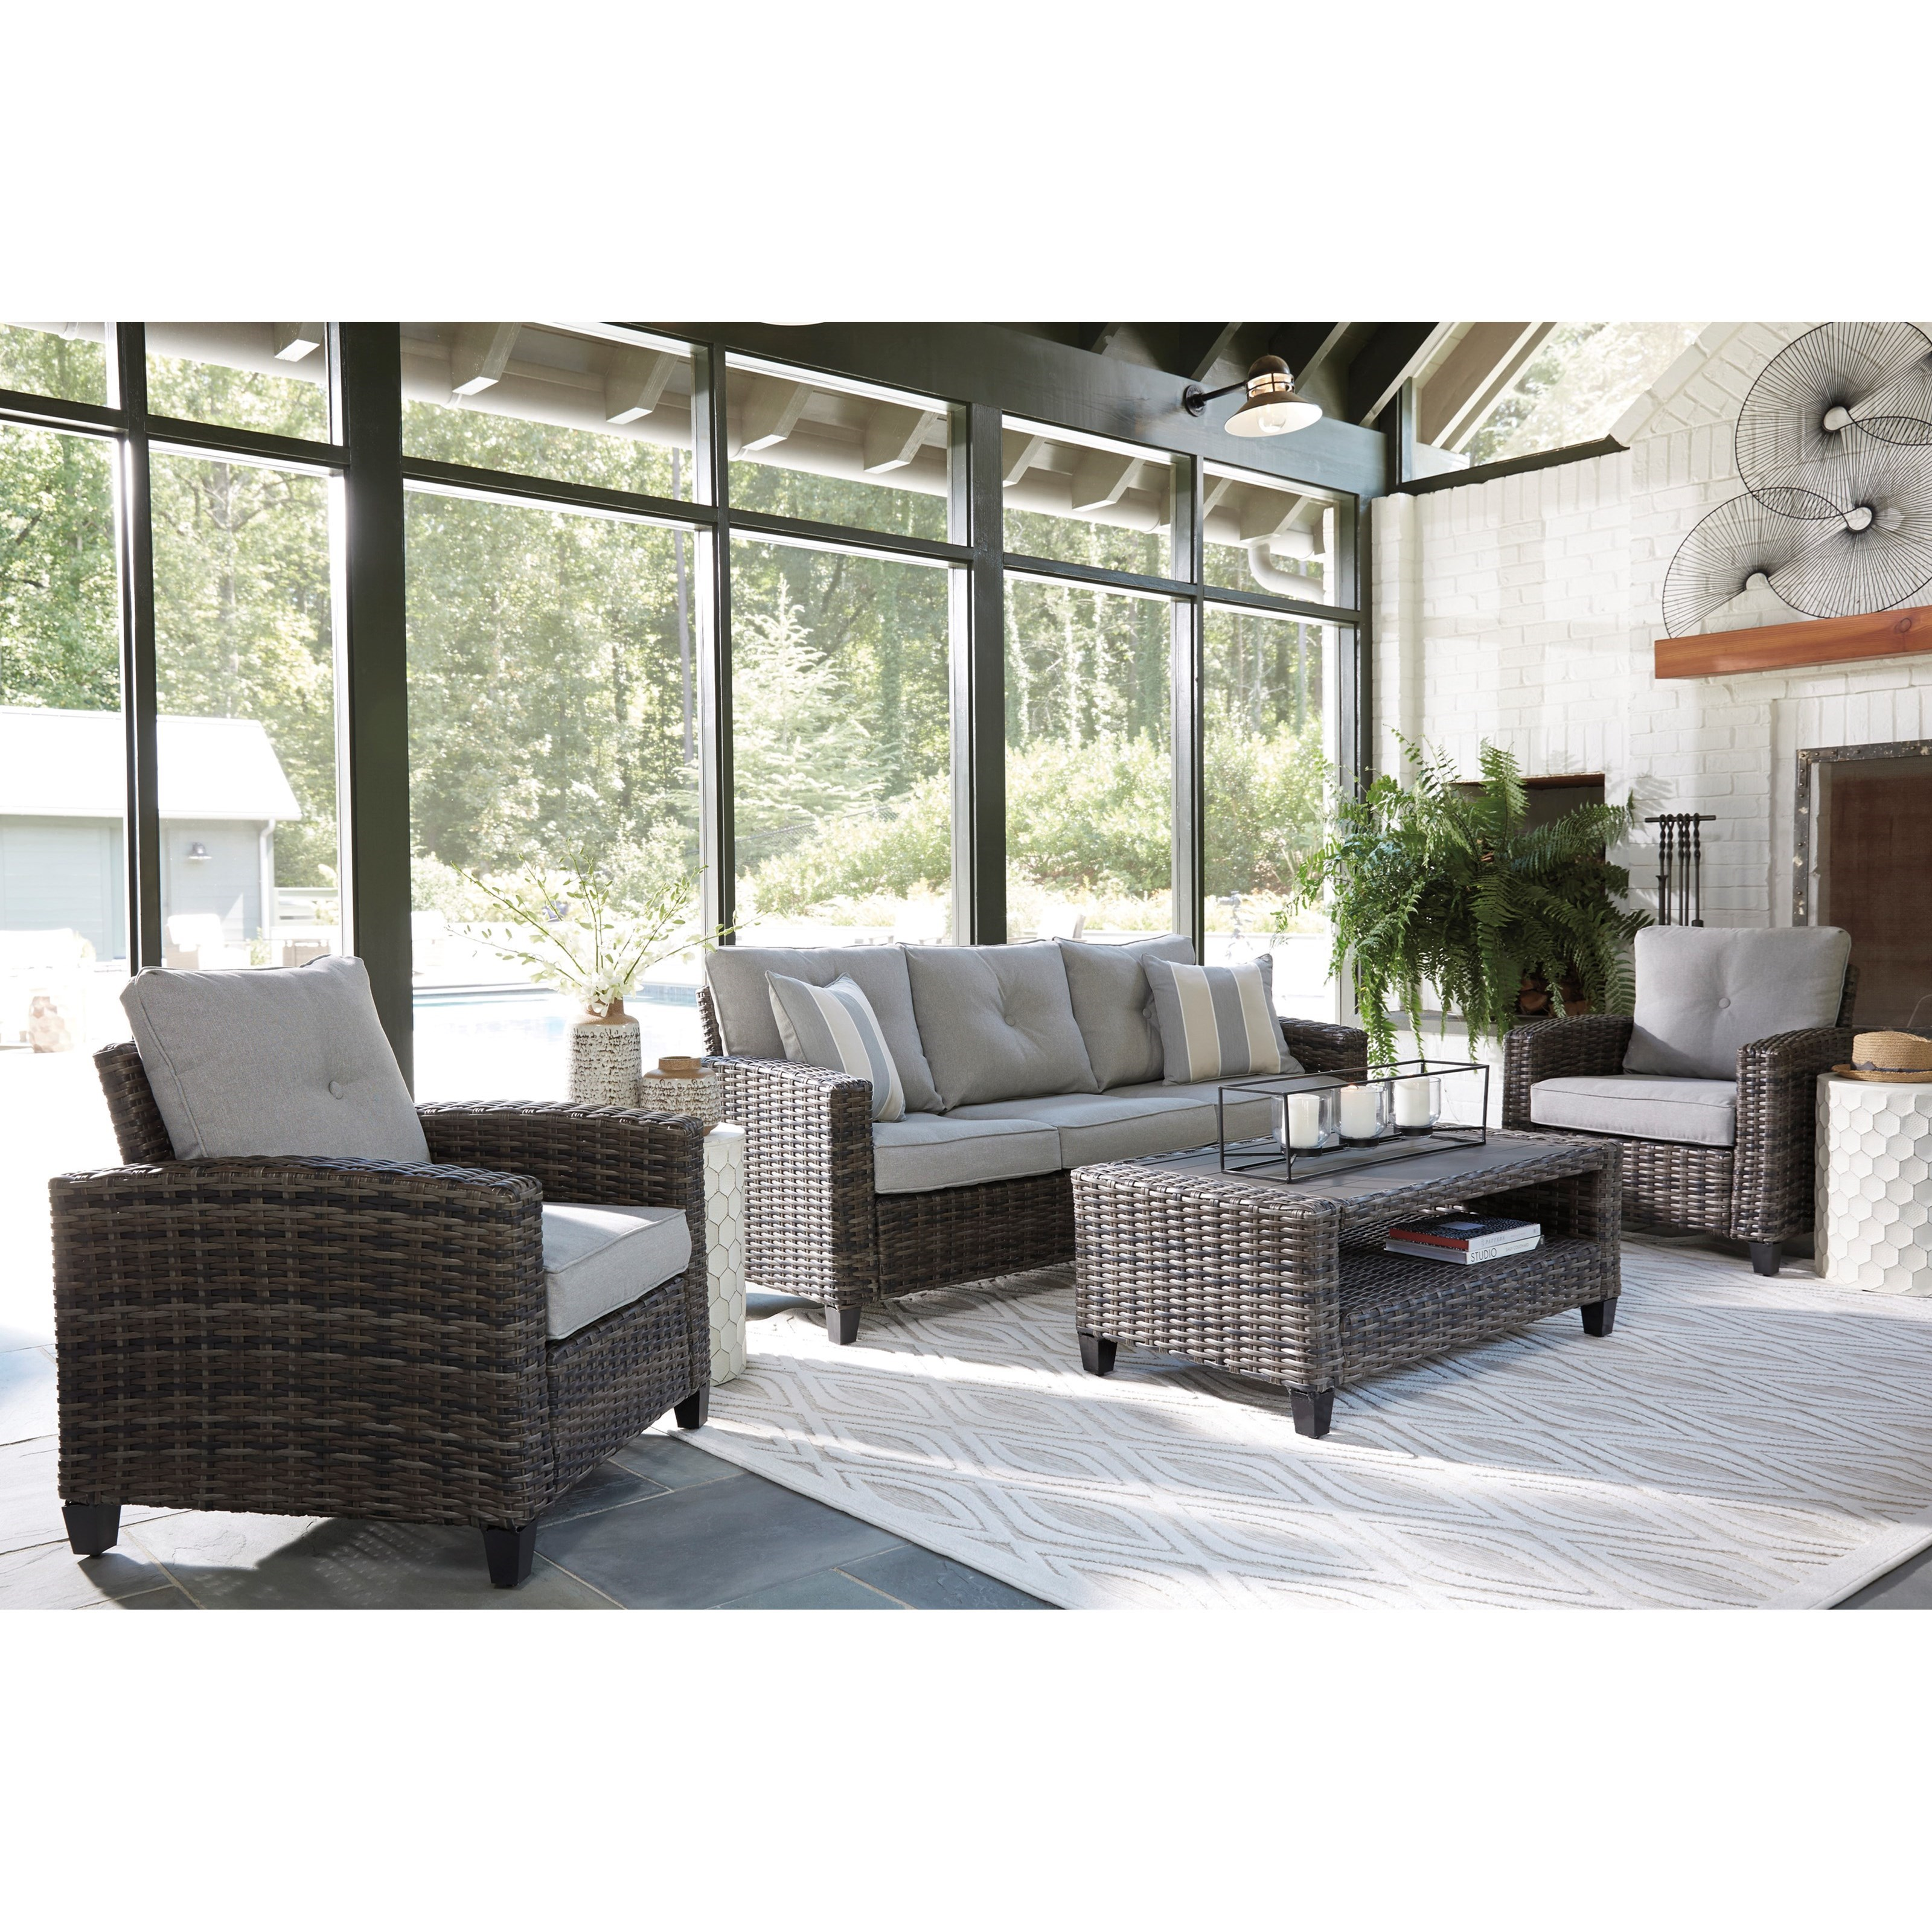 Cloverbrooke Outdoor Conversation Set by Ashley (Signature Design) at Johnny Janosik